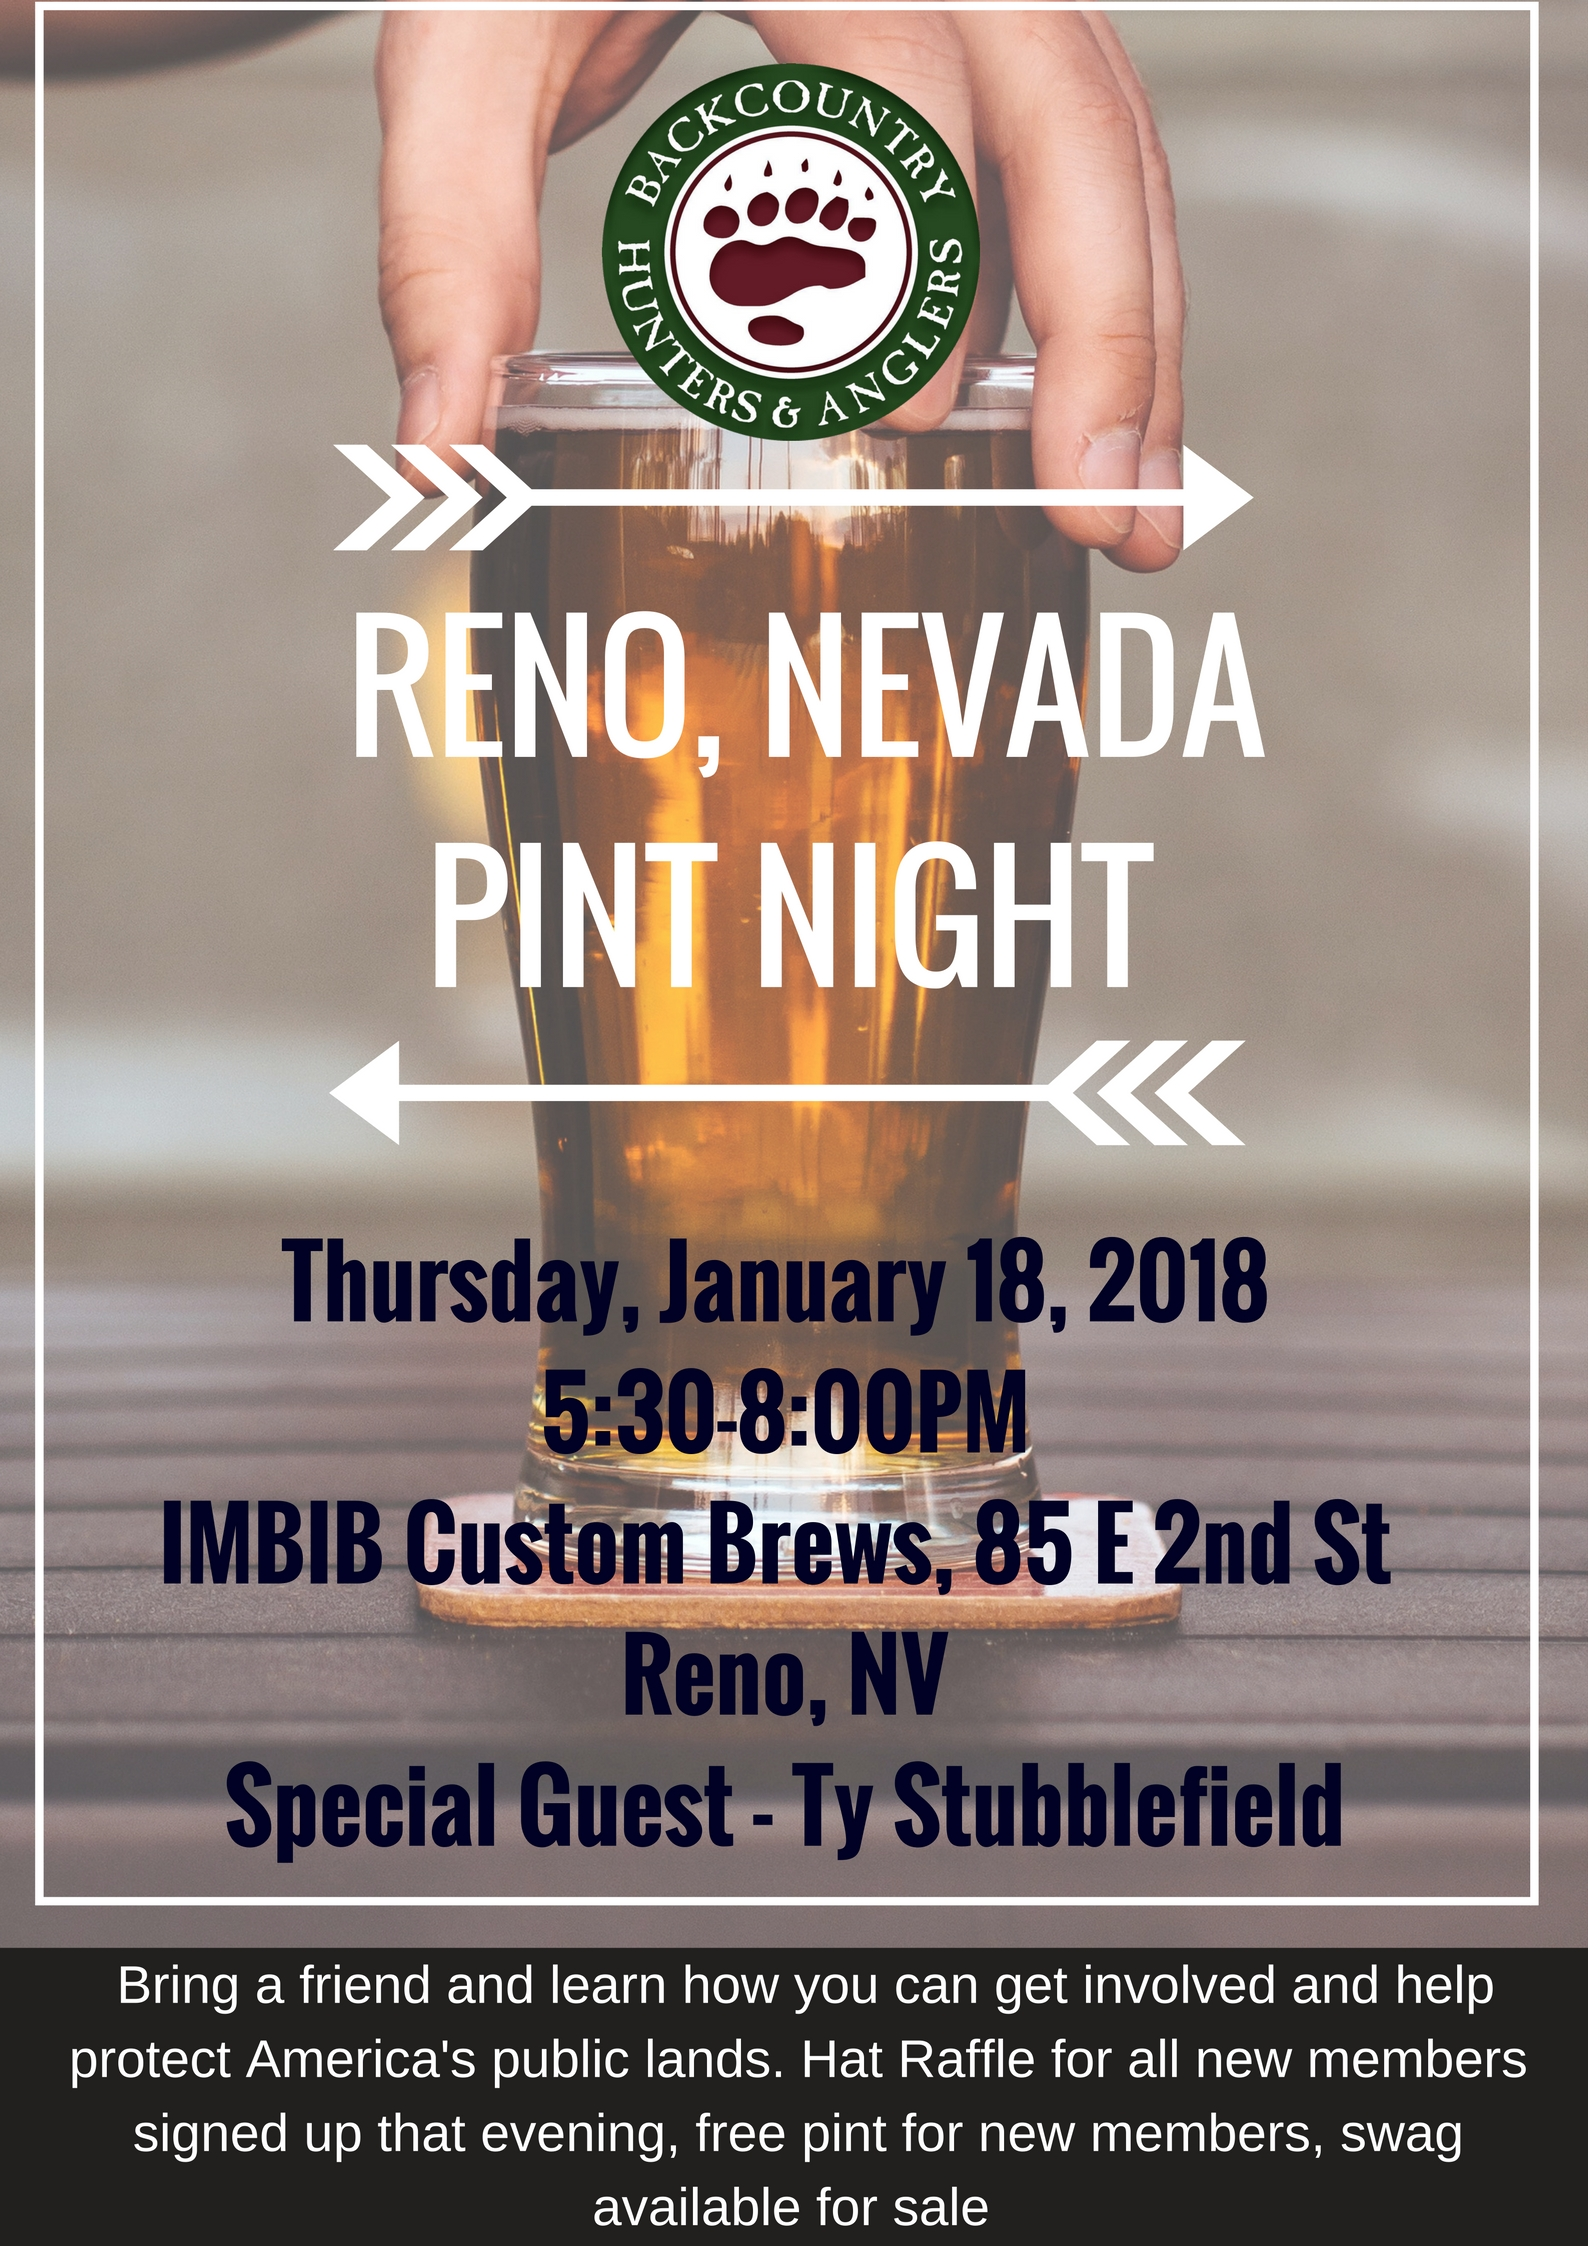 reno_nv_pint_night.jpg